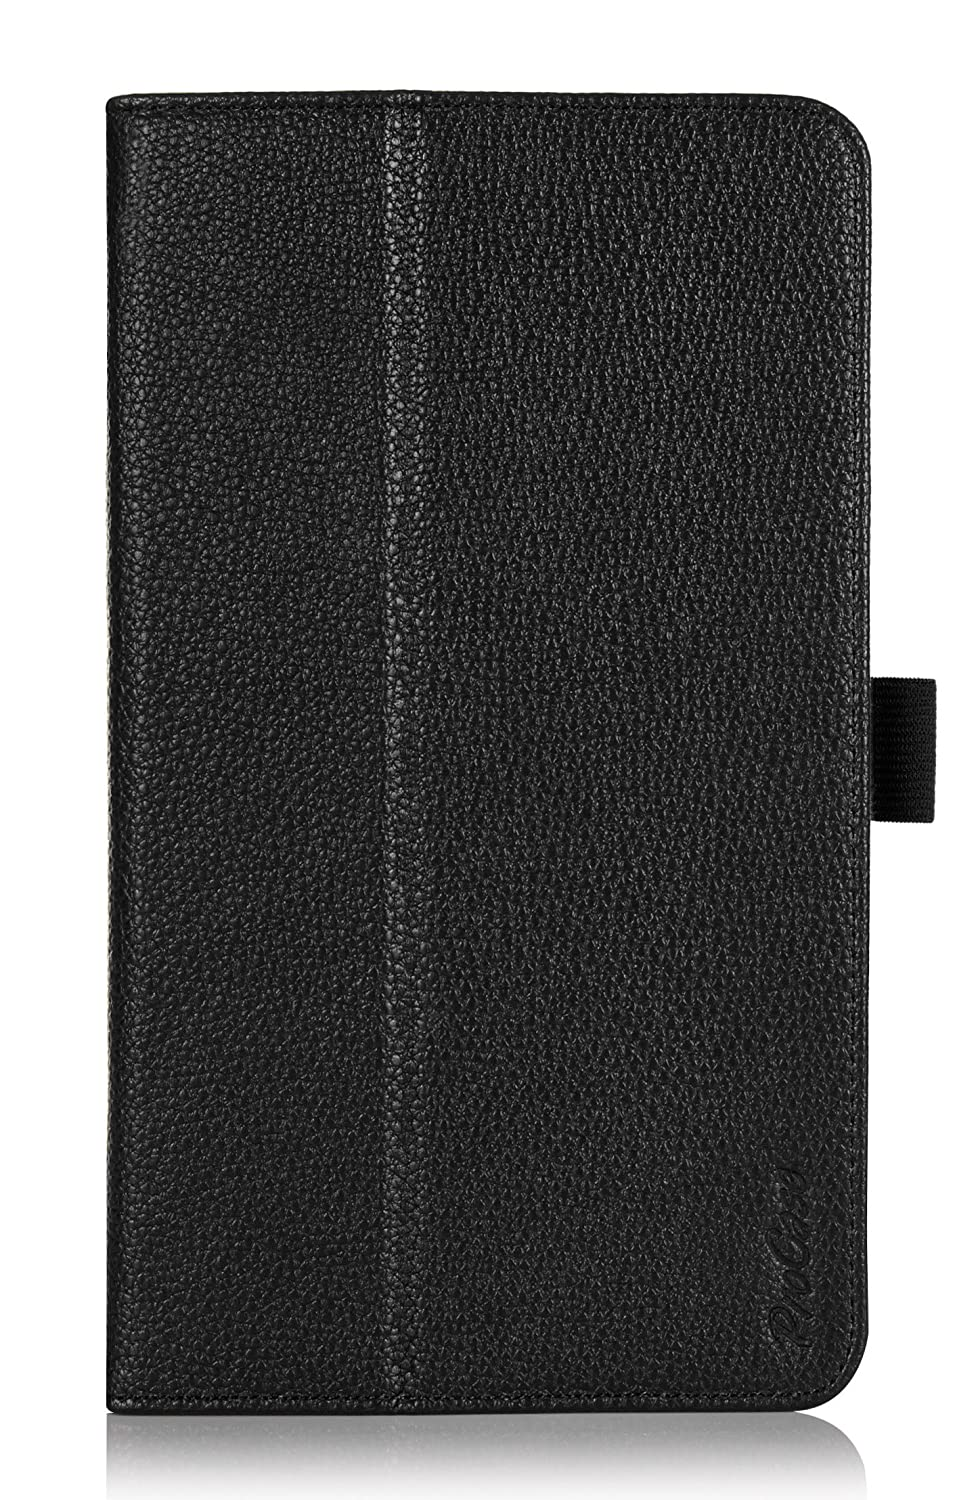 Funda Para Nvidia Shield Tablet K1 Estilo Folio Negro